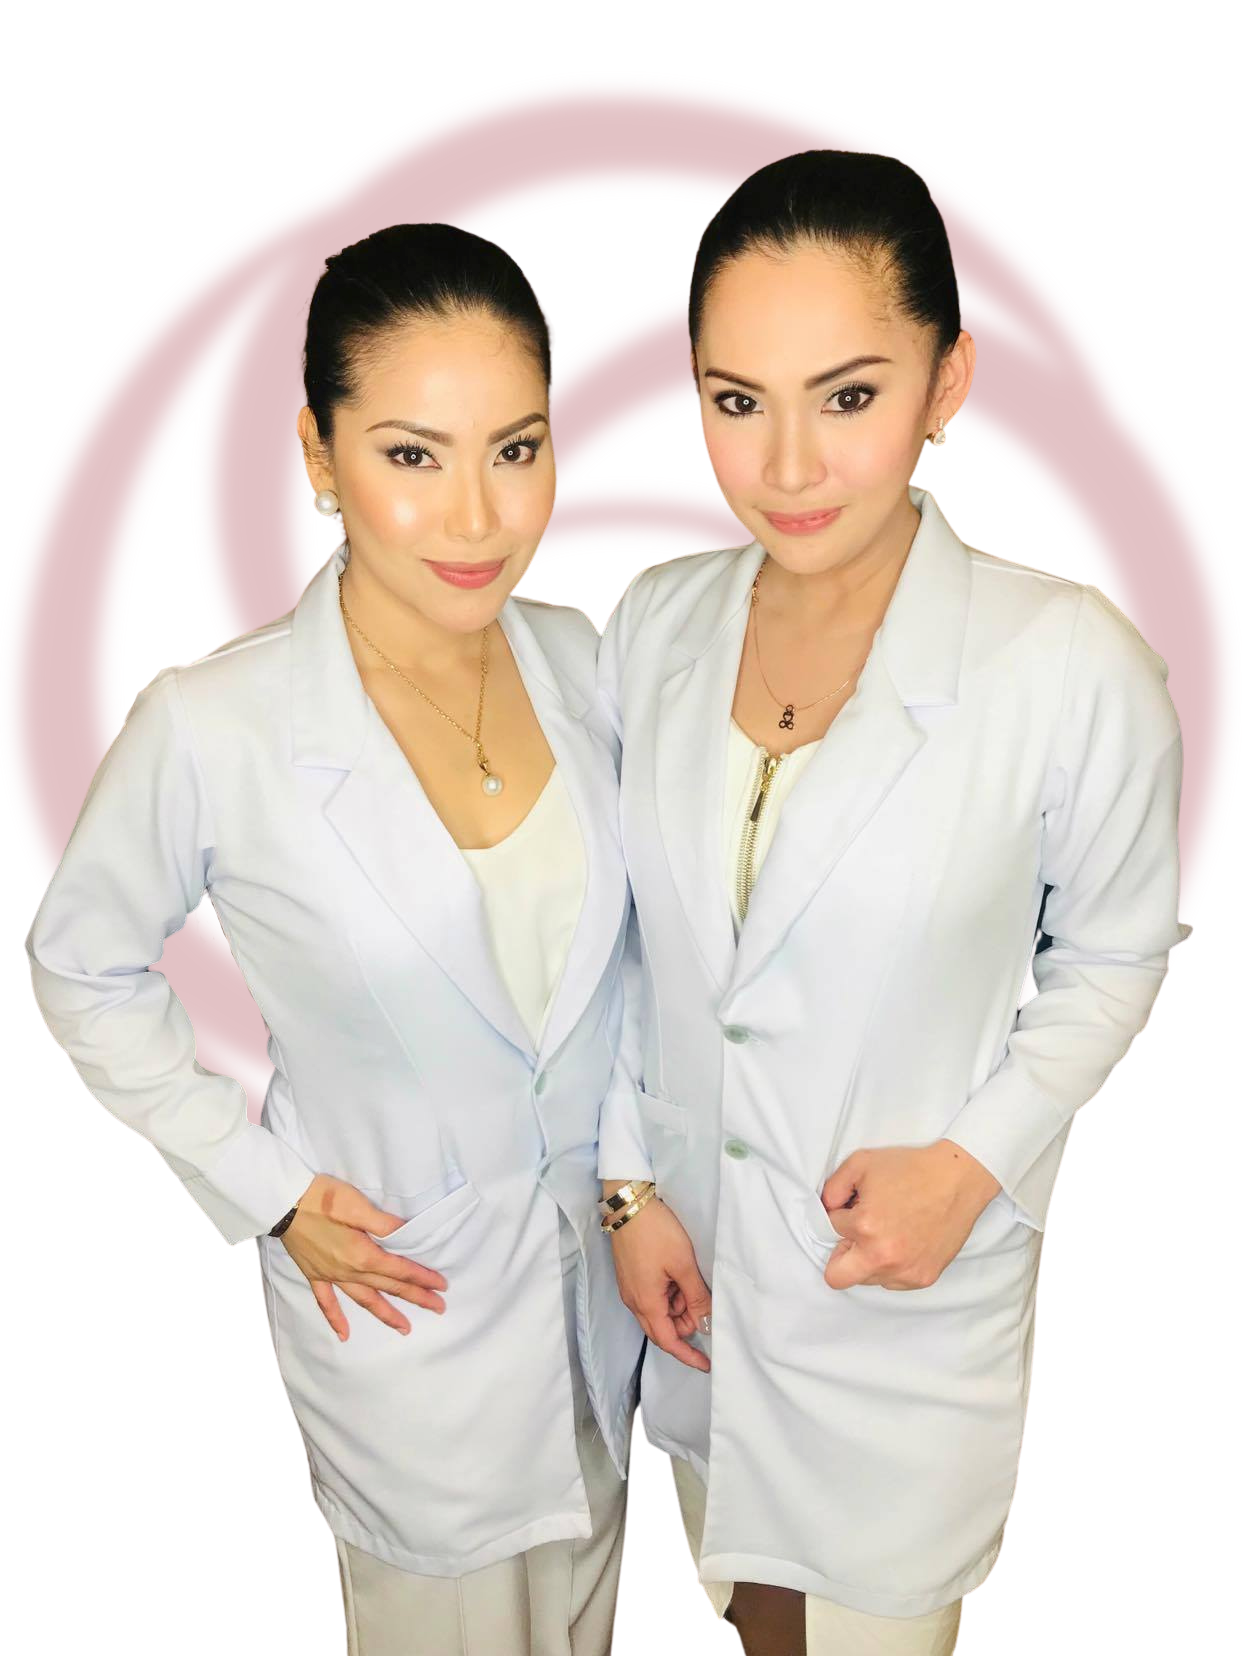 Non-Surgical Aesthetic Procedure, Medical Spa, Minimally Invasive Aesthetic Procedures, Non-Invasive Aesthetic Procedures, Holistic Beauty, Natural Beauty Regiment, Natural Skin Care, Organic Skin Care, Integrative Dermatology, Skincare, Beauty, Antiaging